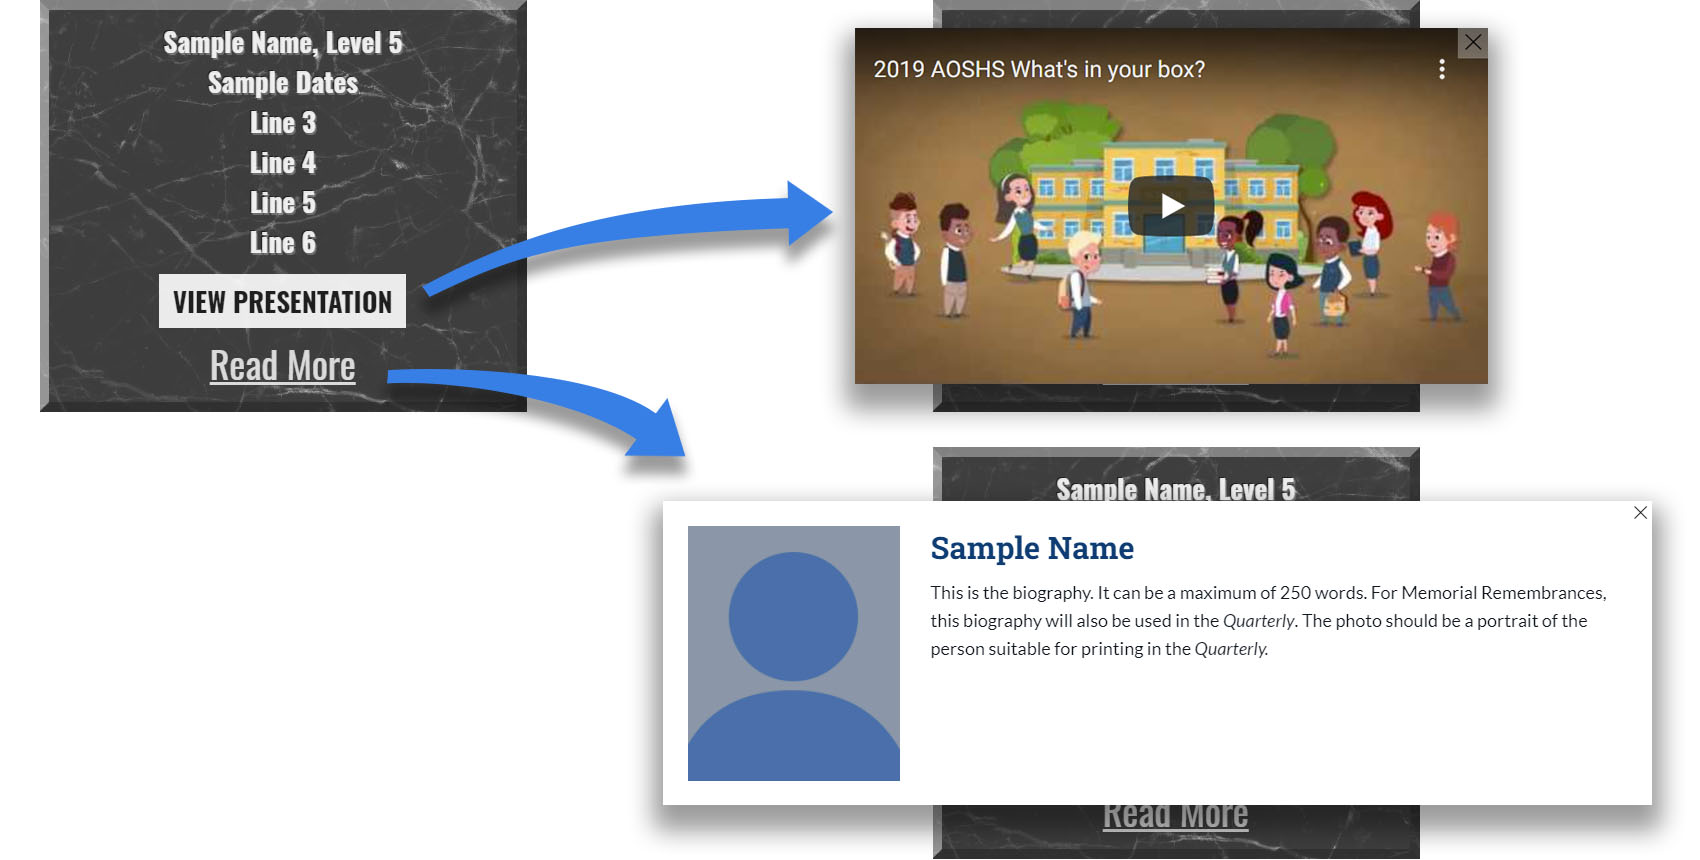 Sample image of Level 5 tile with example presentation, photo, and biography